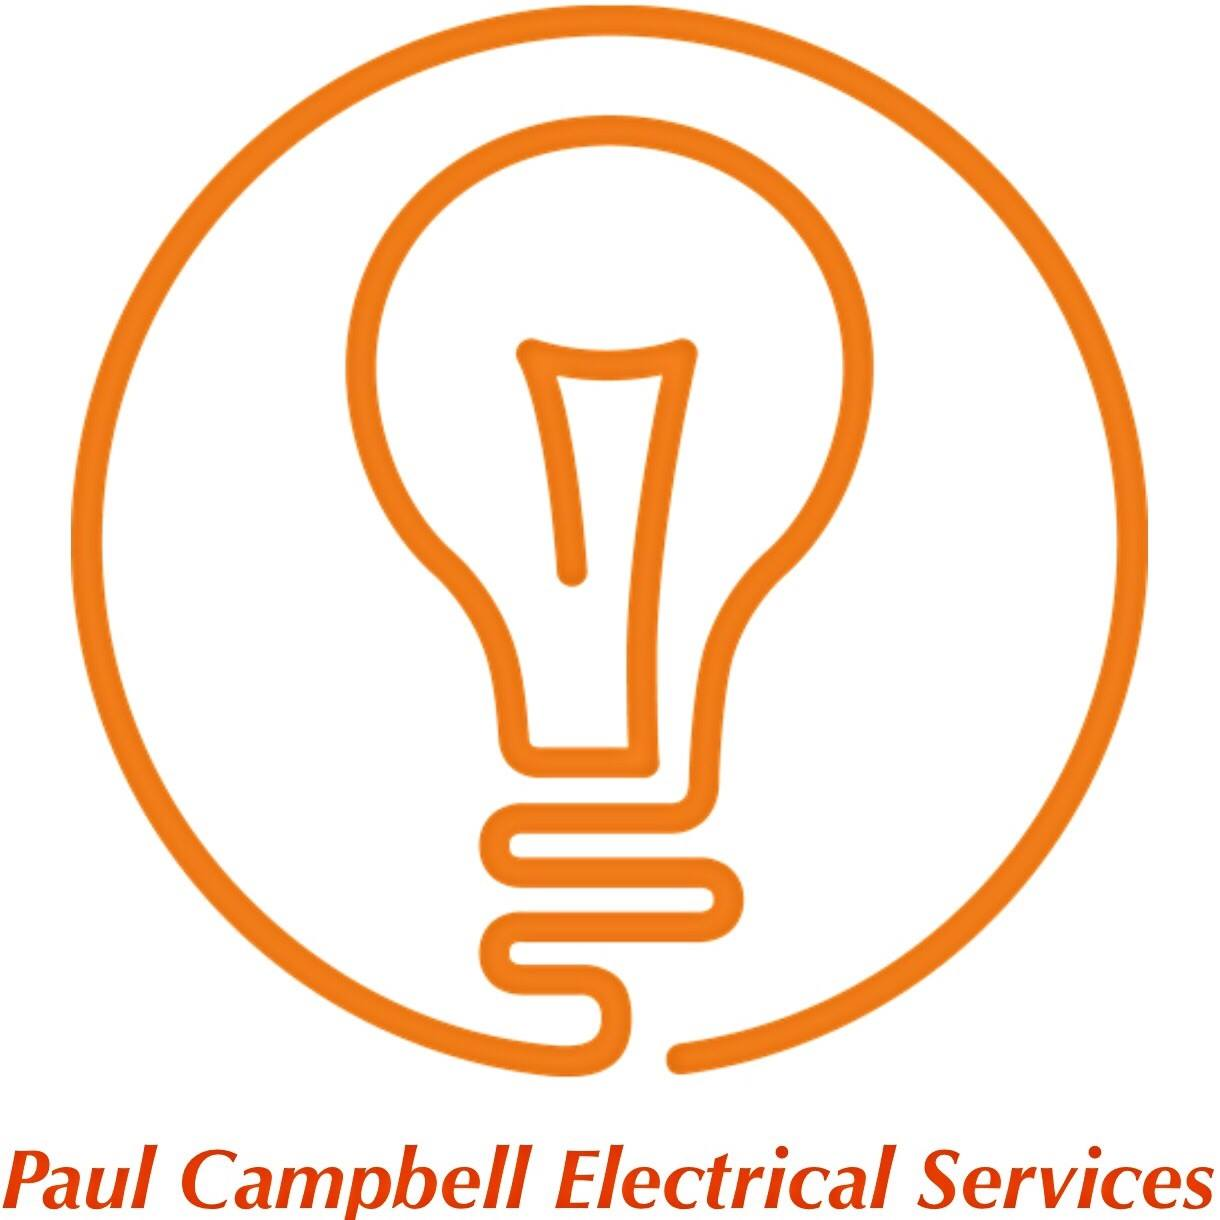 Paul Campbell Electrical